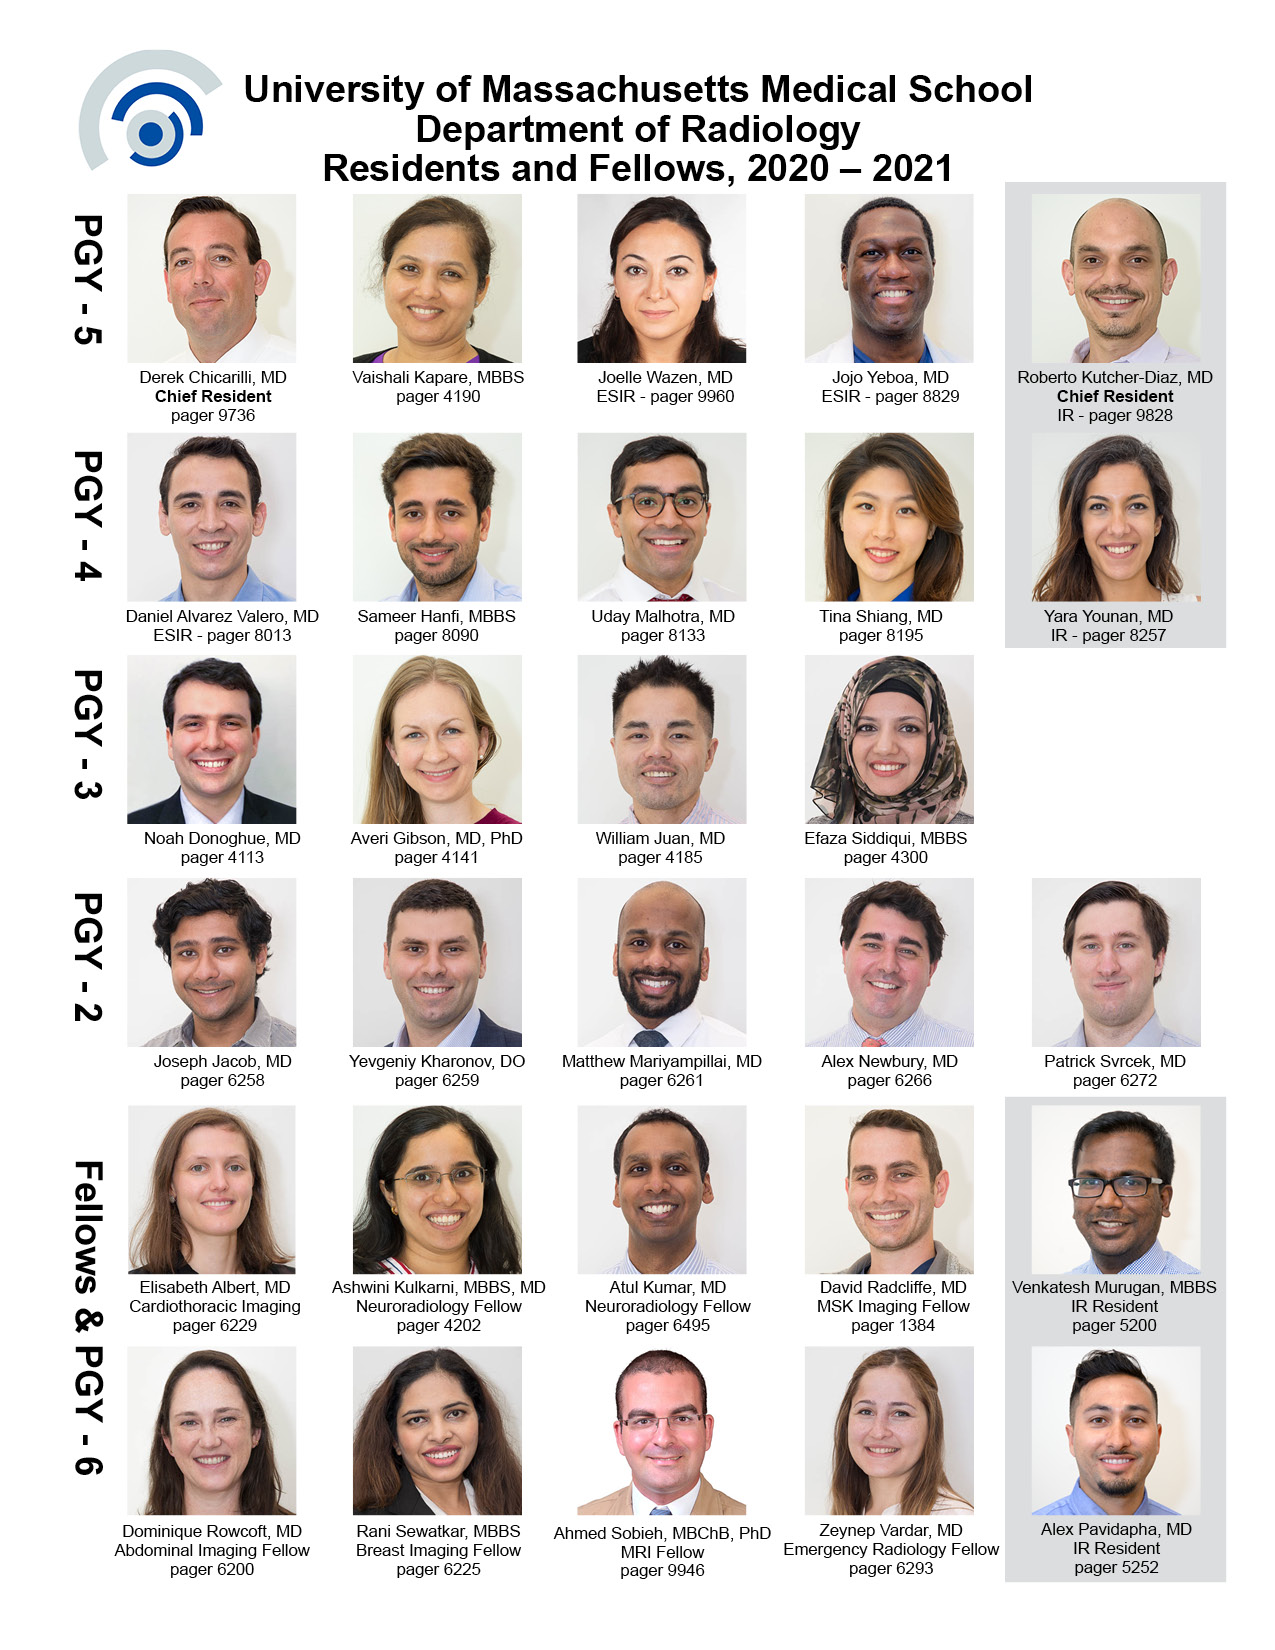 UMMS Radiology Residents and Fellows 2020-2021